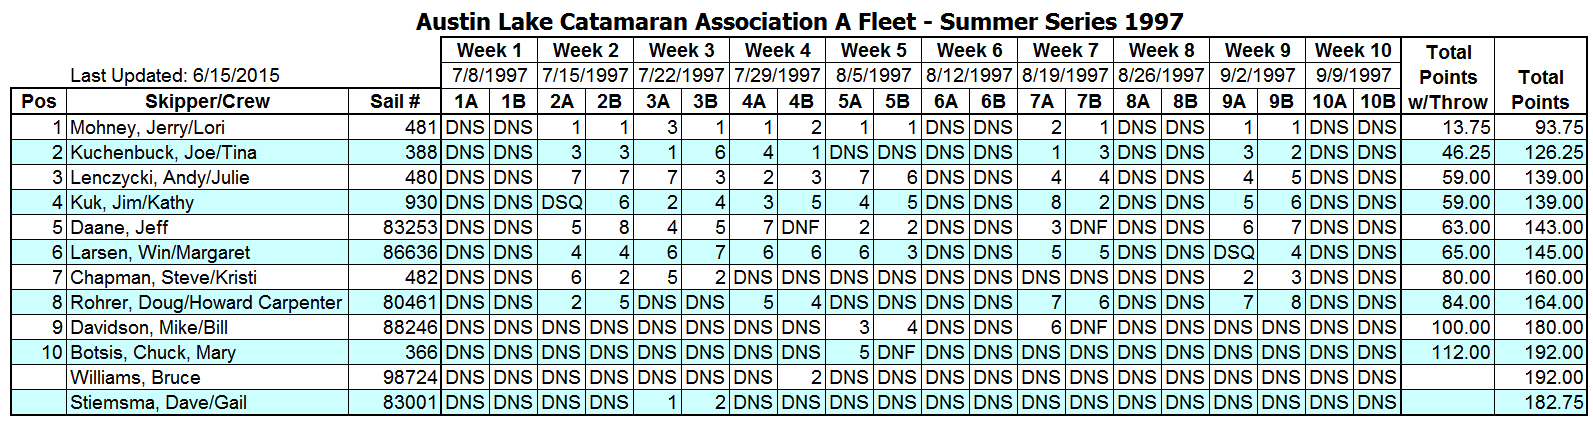 1997 Summer A Fleet Results